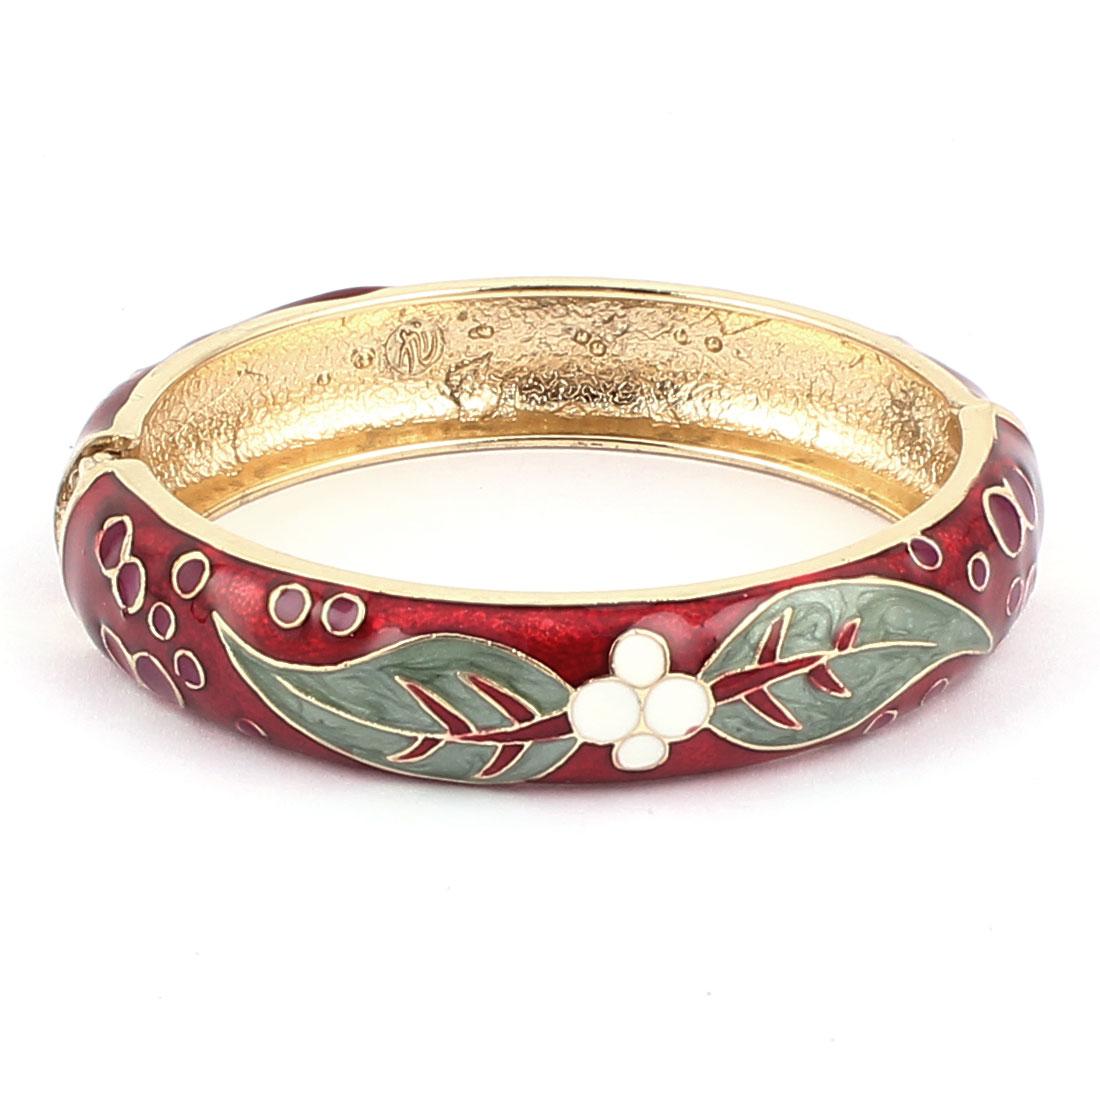 Woman Spring Hinged Floral Pattern Enamel Cuff Bracelet Bangle Wristband Red